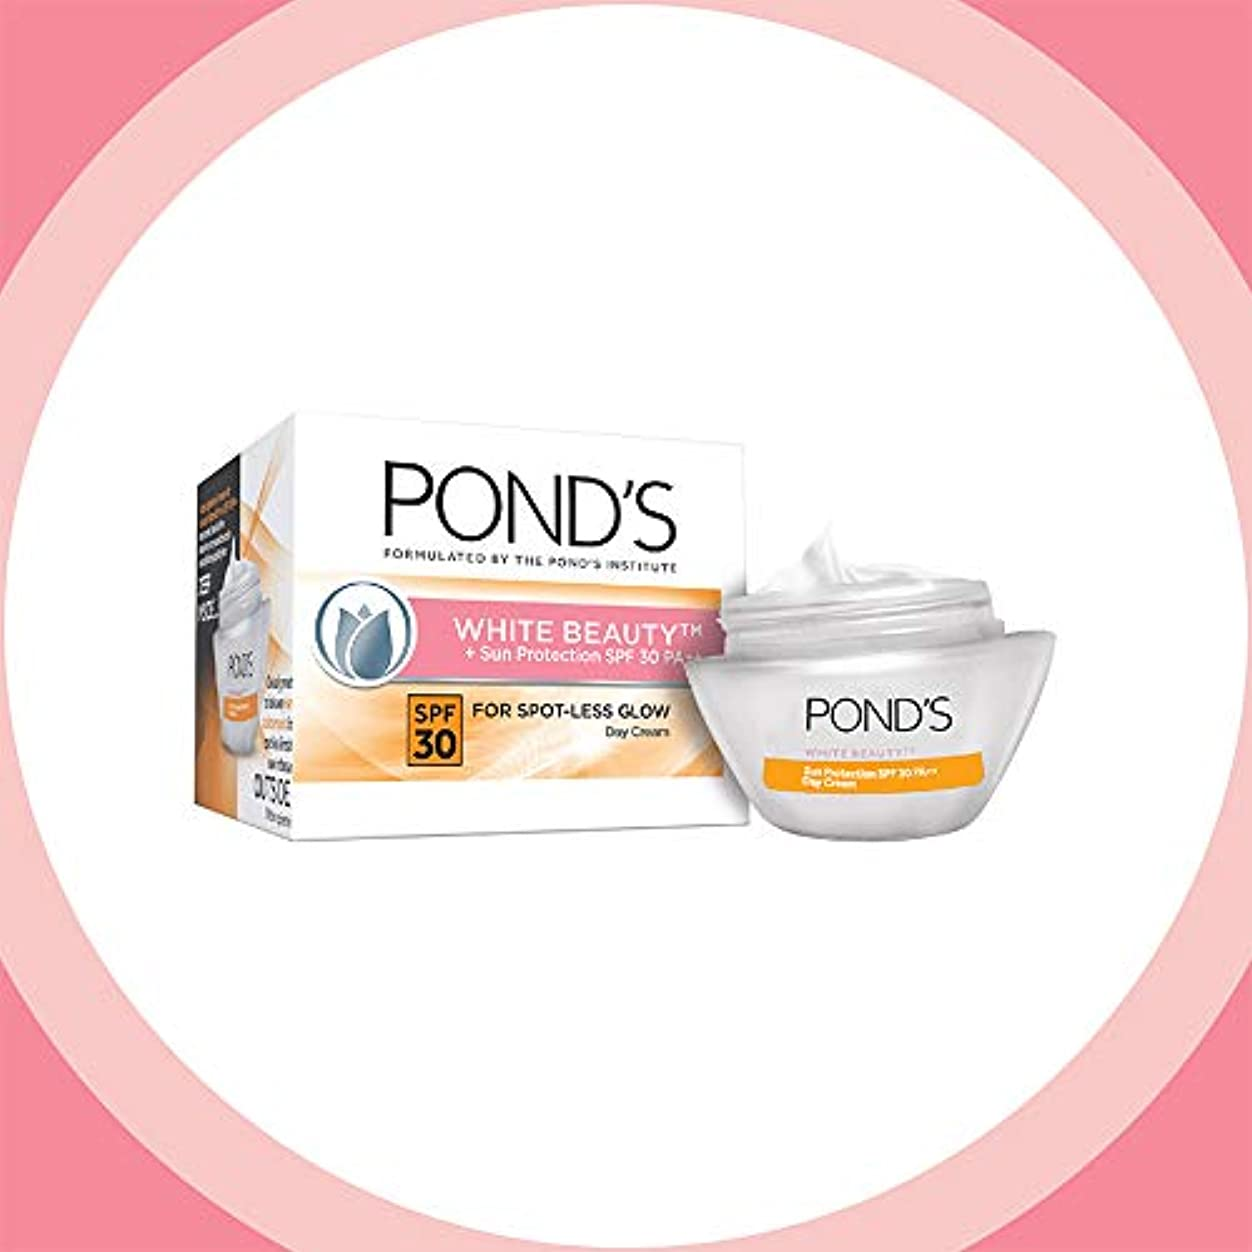 デッド拡張類似性POND'S White Beauty Sun Protection SPF 30 Day Cream, 35 gms (並行インポート) India